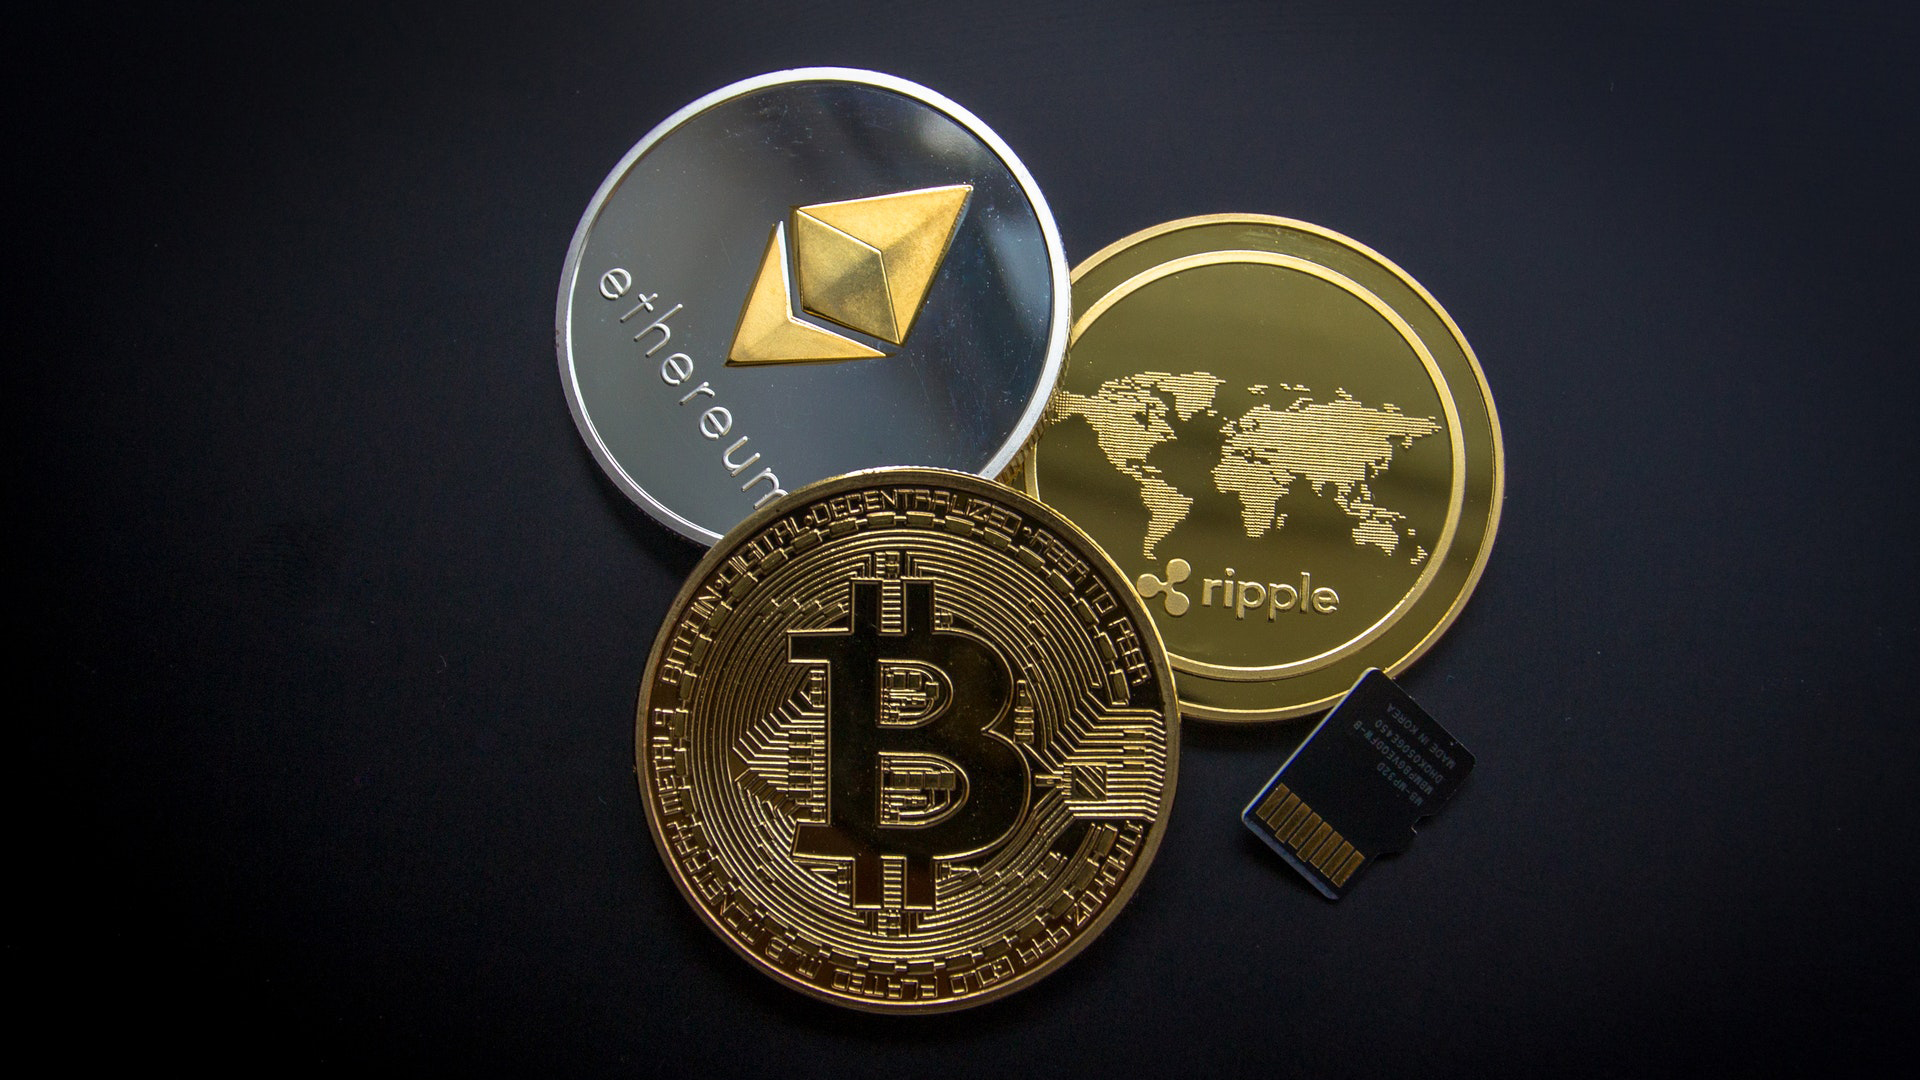 Top 3 Cryptocurrencies to Watch in 2021